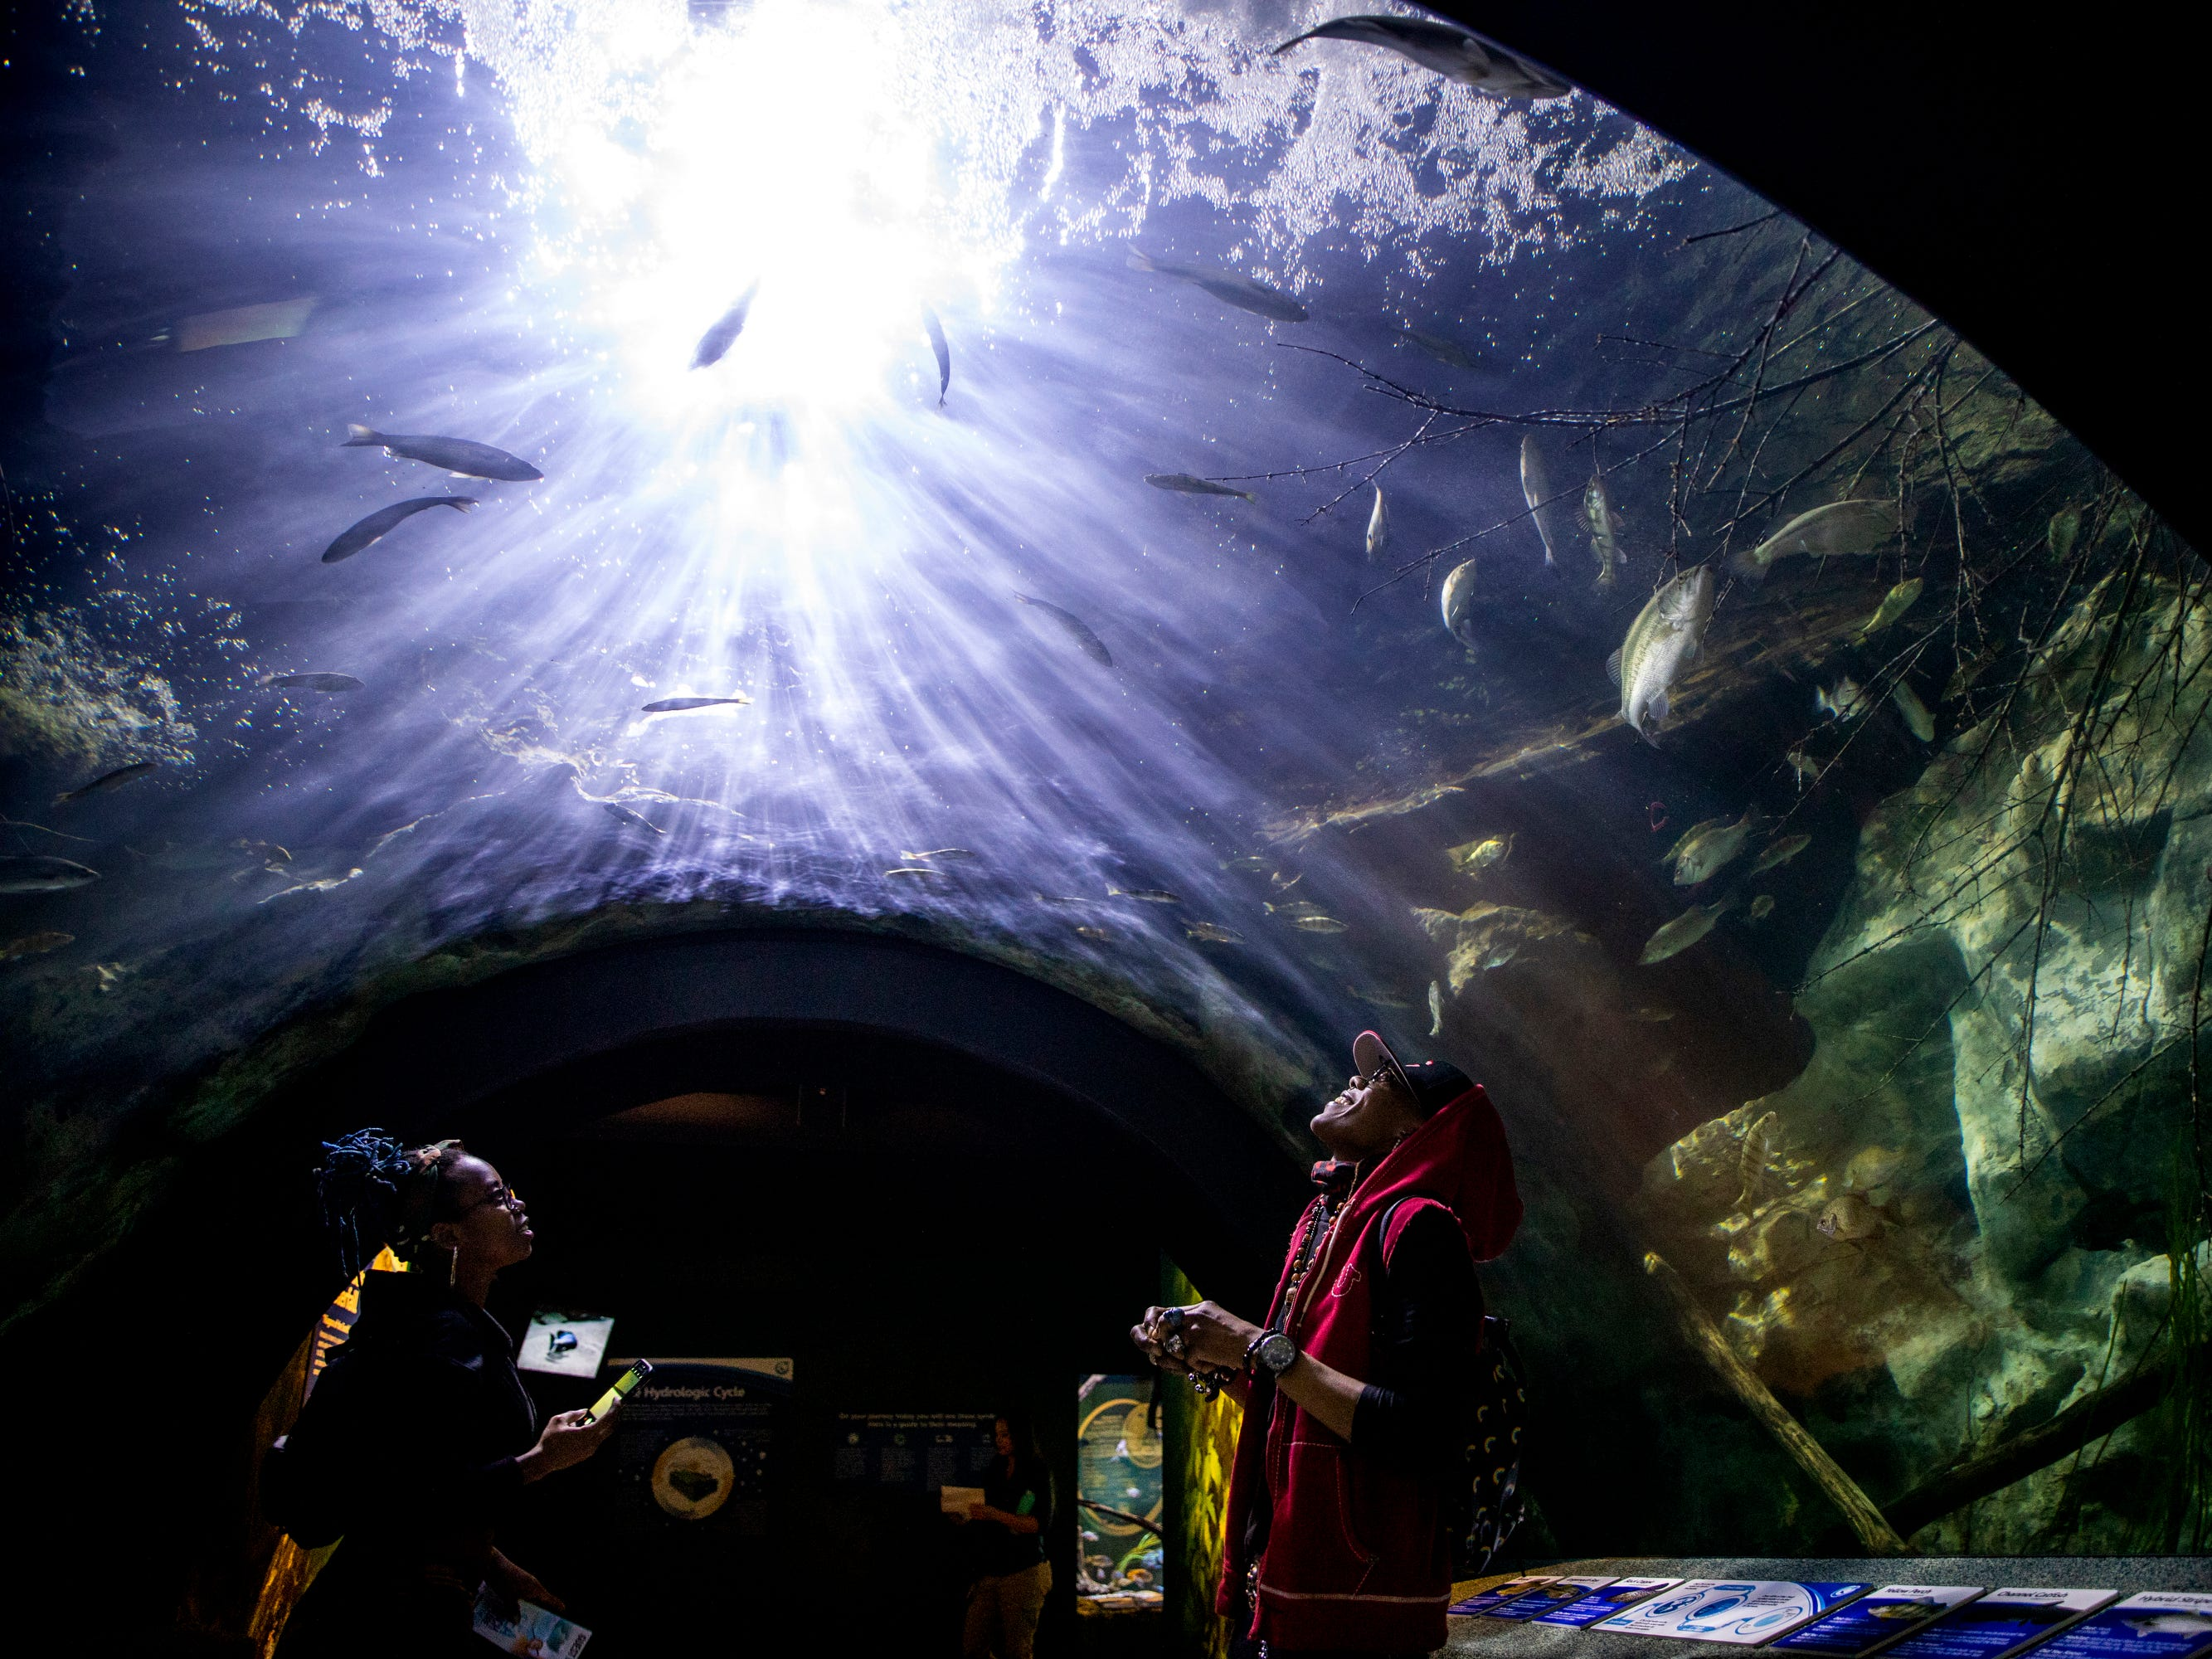 Cameshia Atwater and Trish Andrews, of Indianapolis, walk under the first tunnel of Newport Aquarium in the Freshwater Falls exhibit Thursday, April 11, 2019 in Newport, Ky. Beneath the Falls allows guests to experience what it is like underwater beneath a Kentucky waterfall with bass, black crappie and perch swimming around.